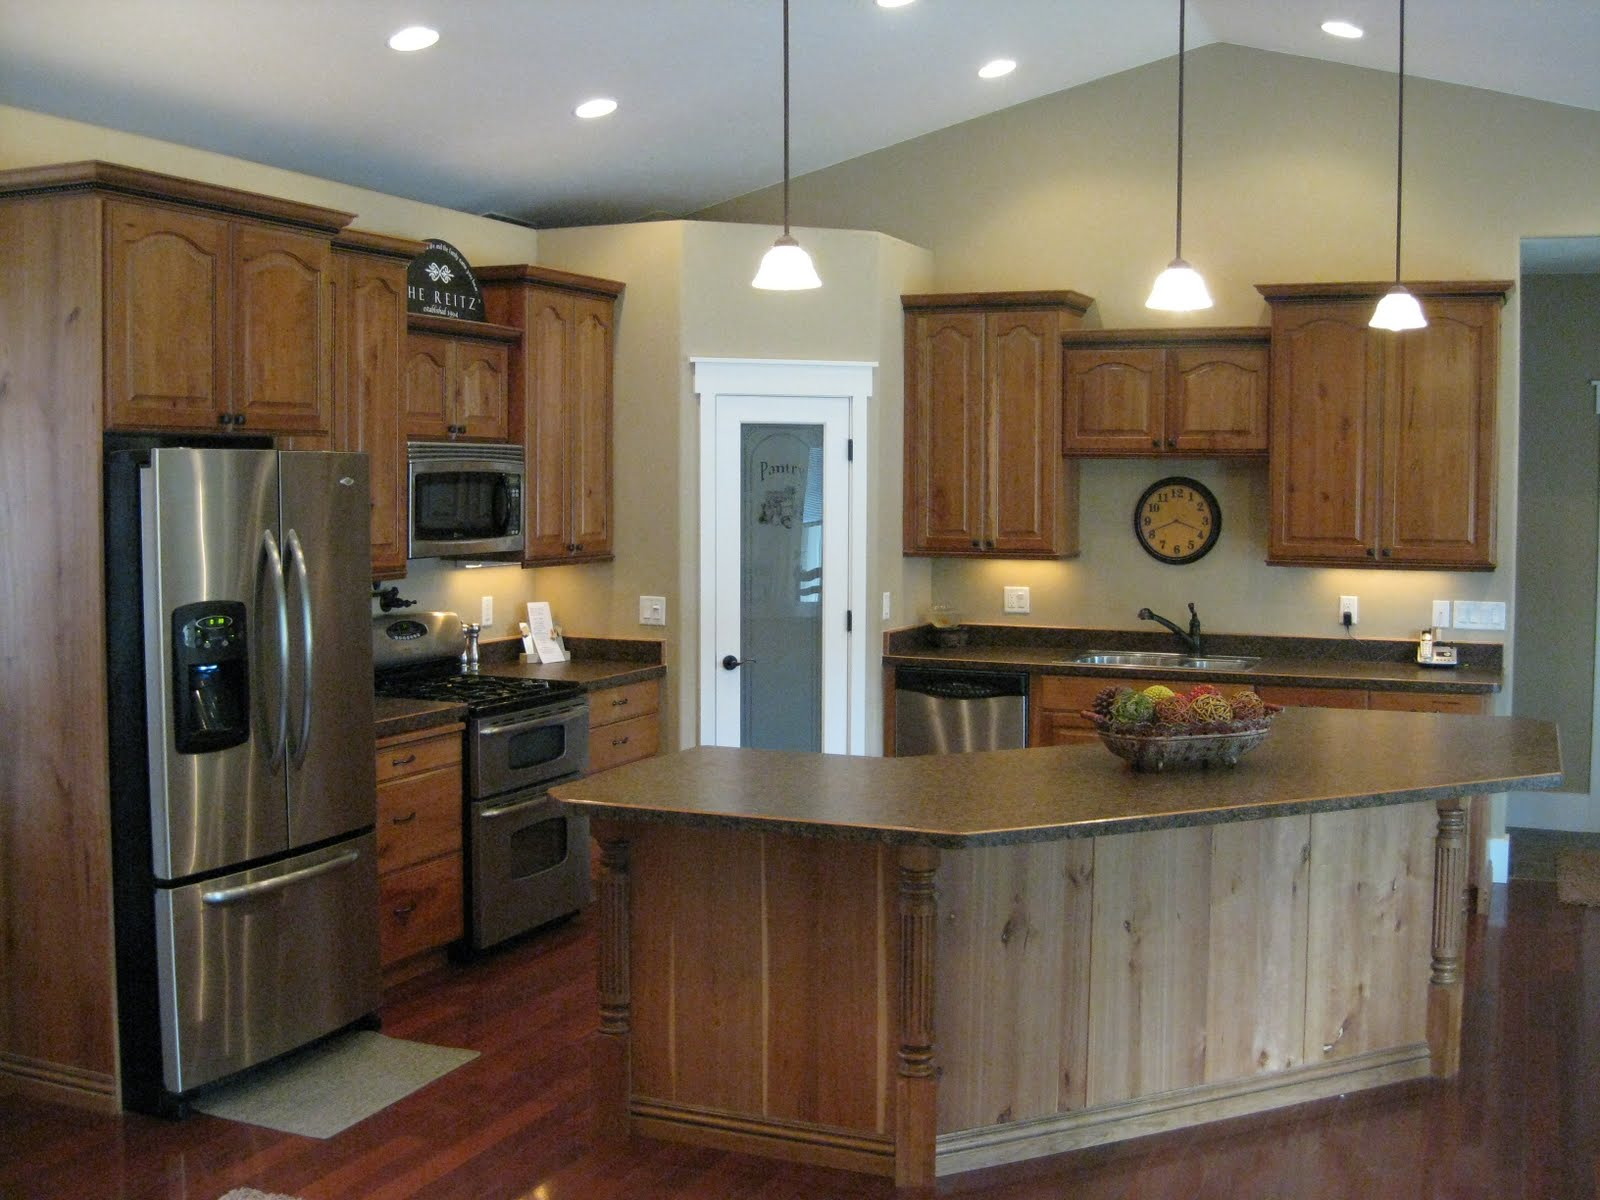 Kitchen Cabinets With Black Trim R And R Cabinets Inc Cherry Cabinets With Mocha Glaze And